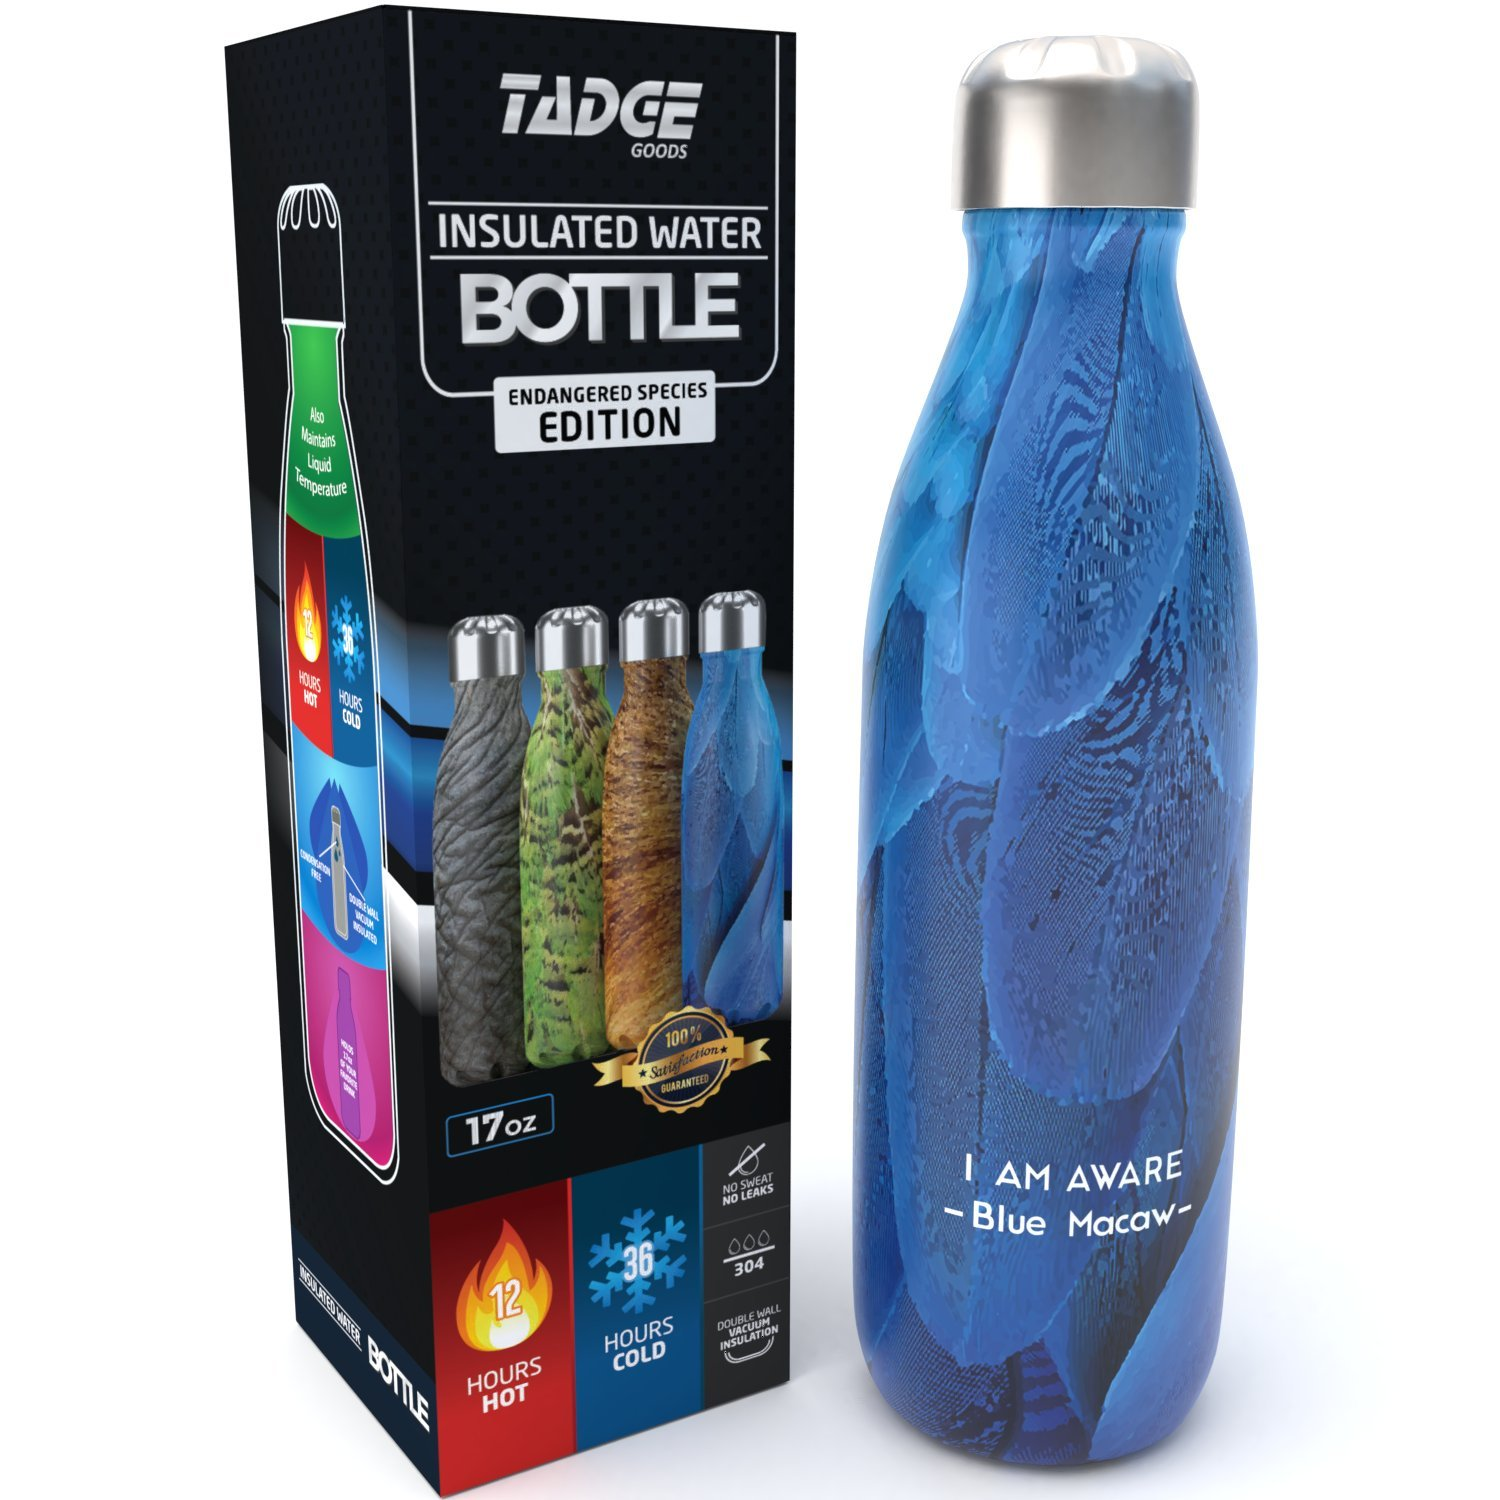 Tadge Goods Insulated Stainless Steel Water Bottle - Endangered Species Edition - Metal Thermo Style Bottles Great Sports, Gym, Kids - Keeps Drinks Hot & Cold - 17 Oz Large